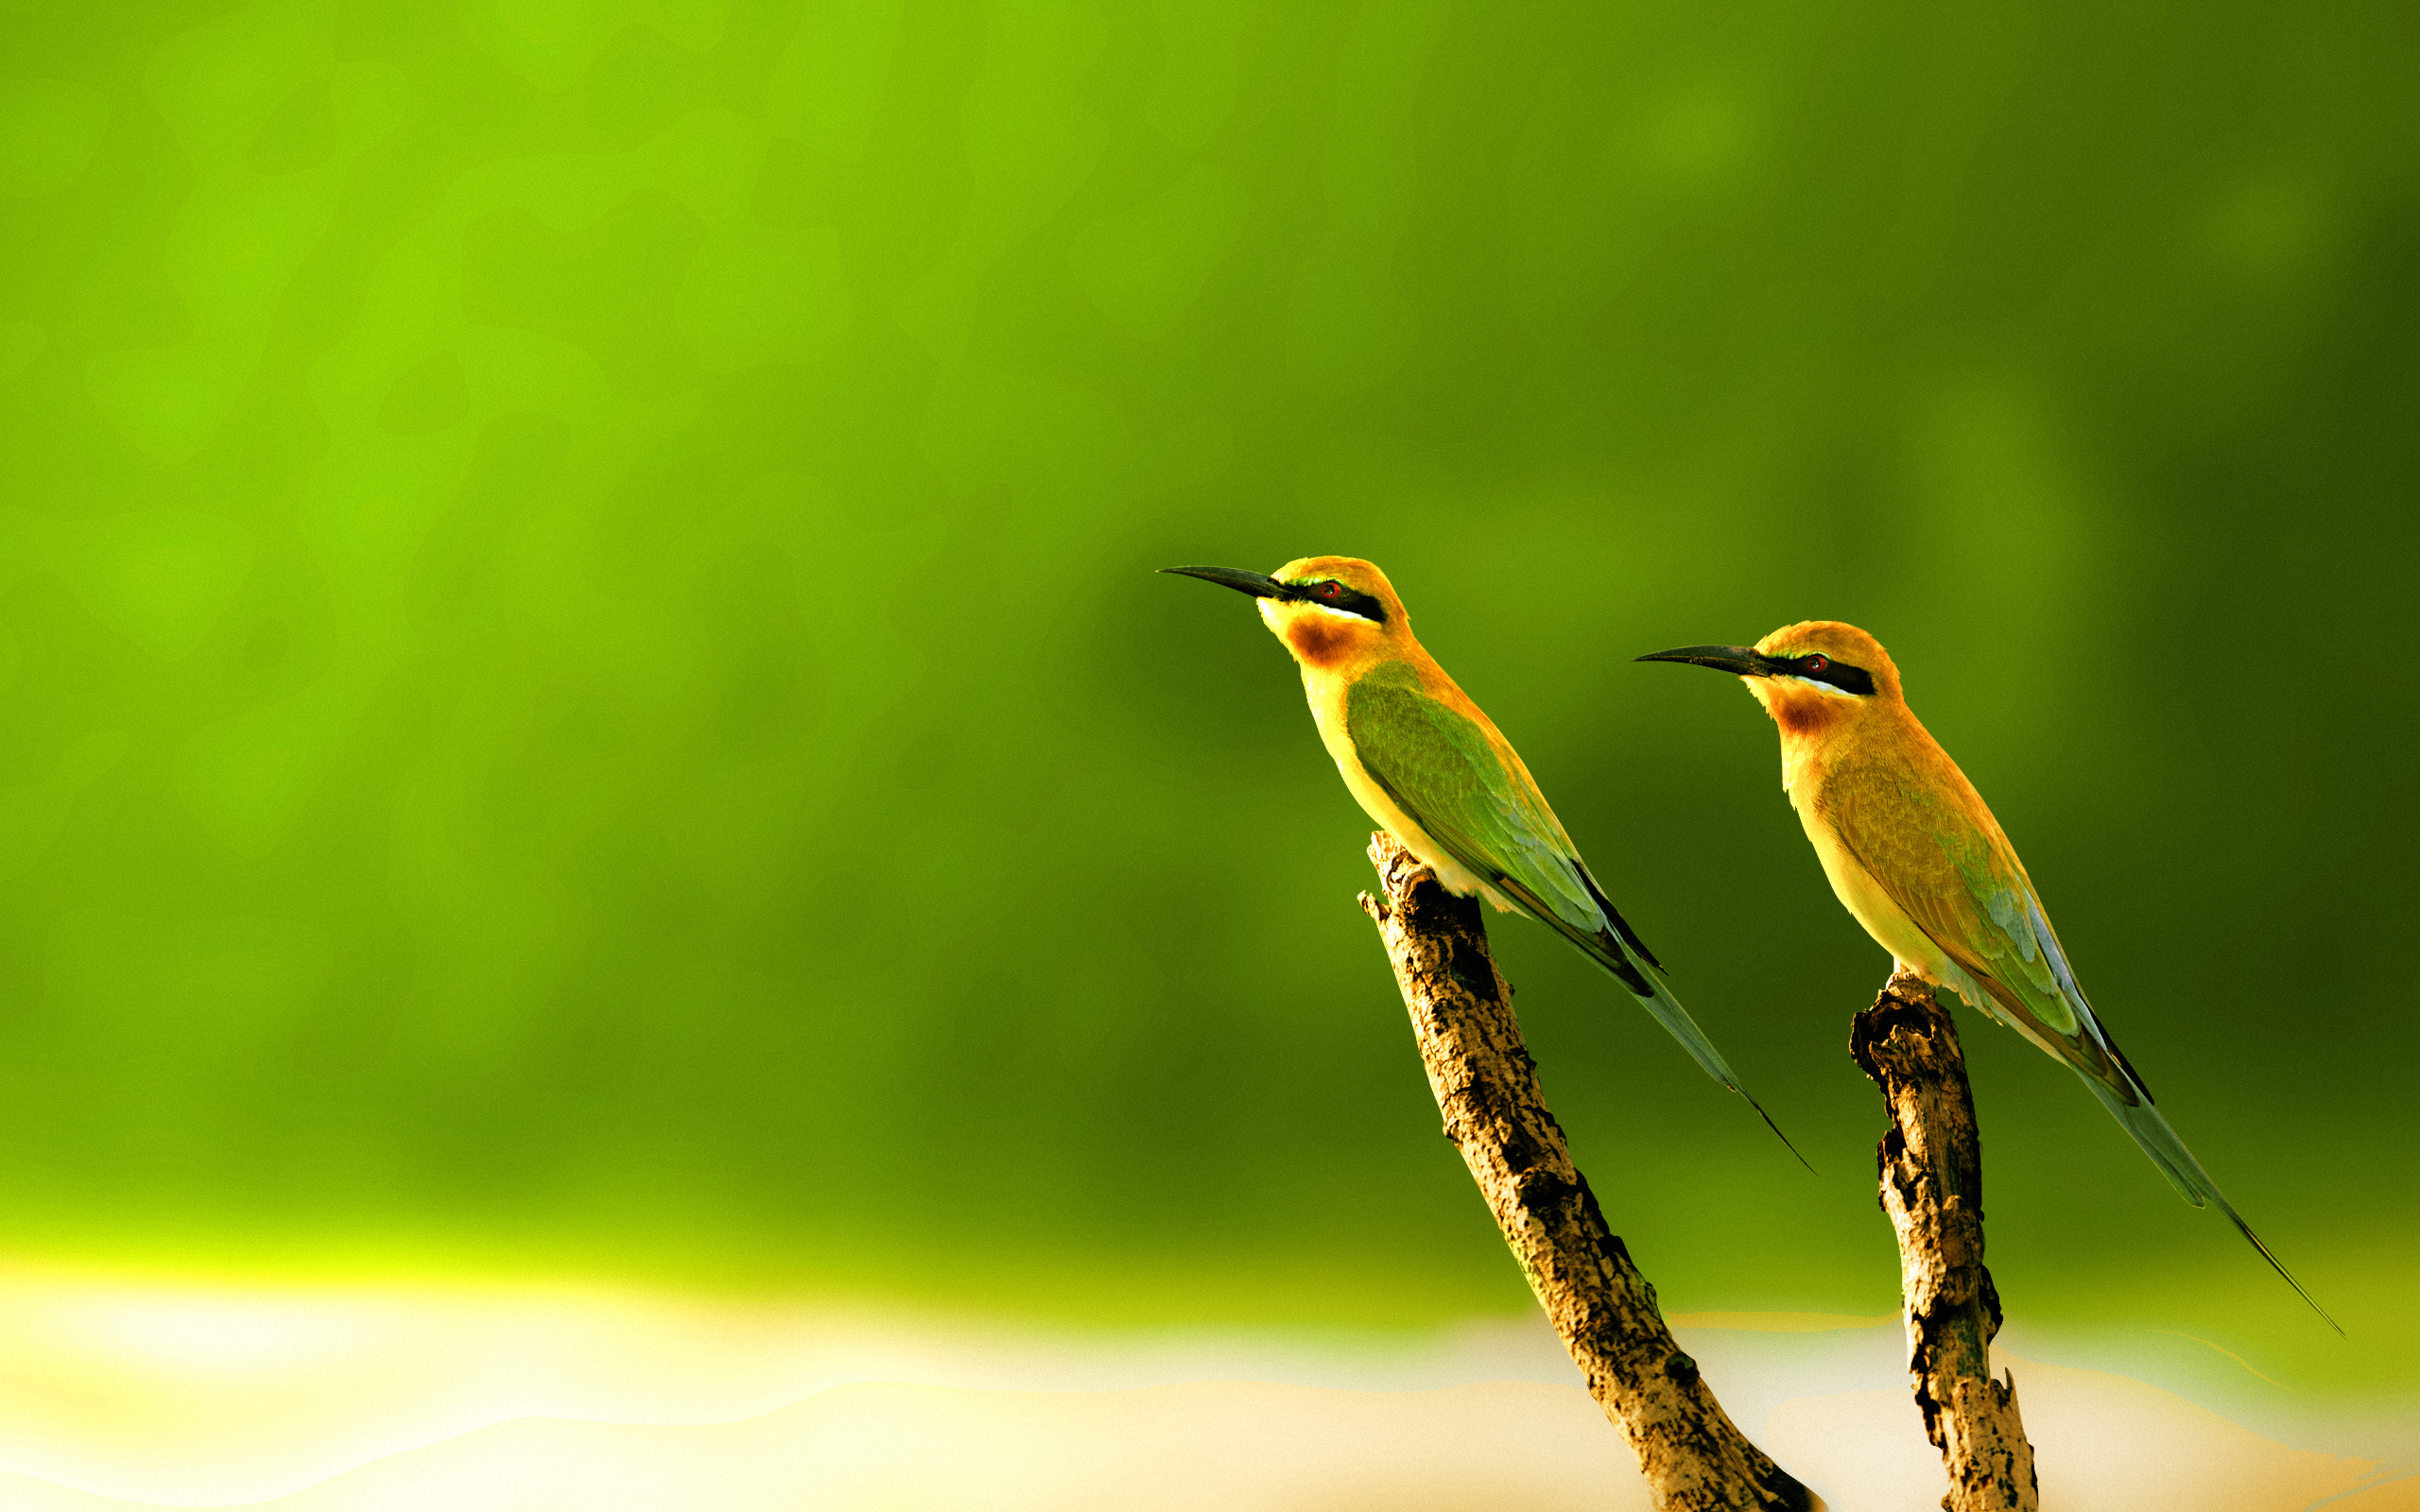 Love Birds Wallpaper Free Download For Pc: 15+ Beautiful Birds Wallpaper Collection [HD Edition]